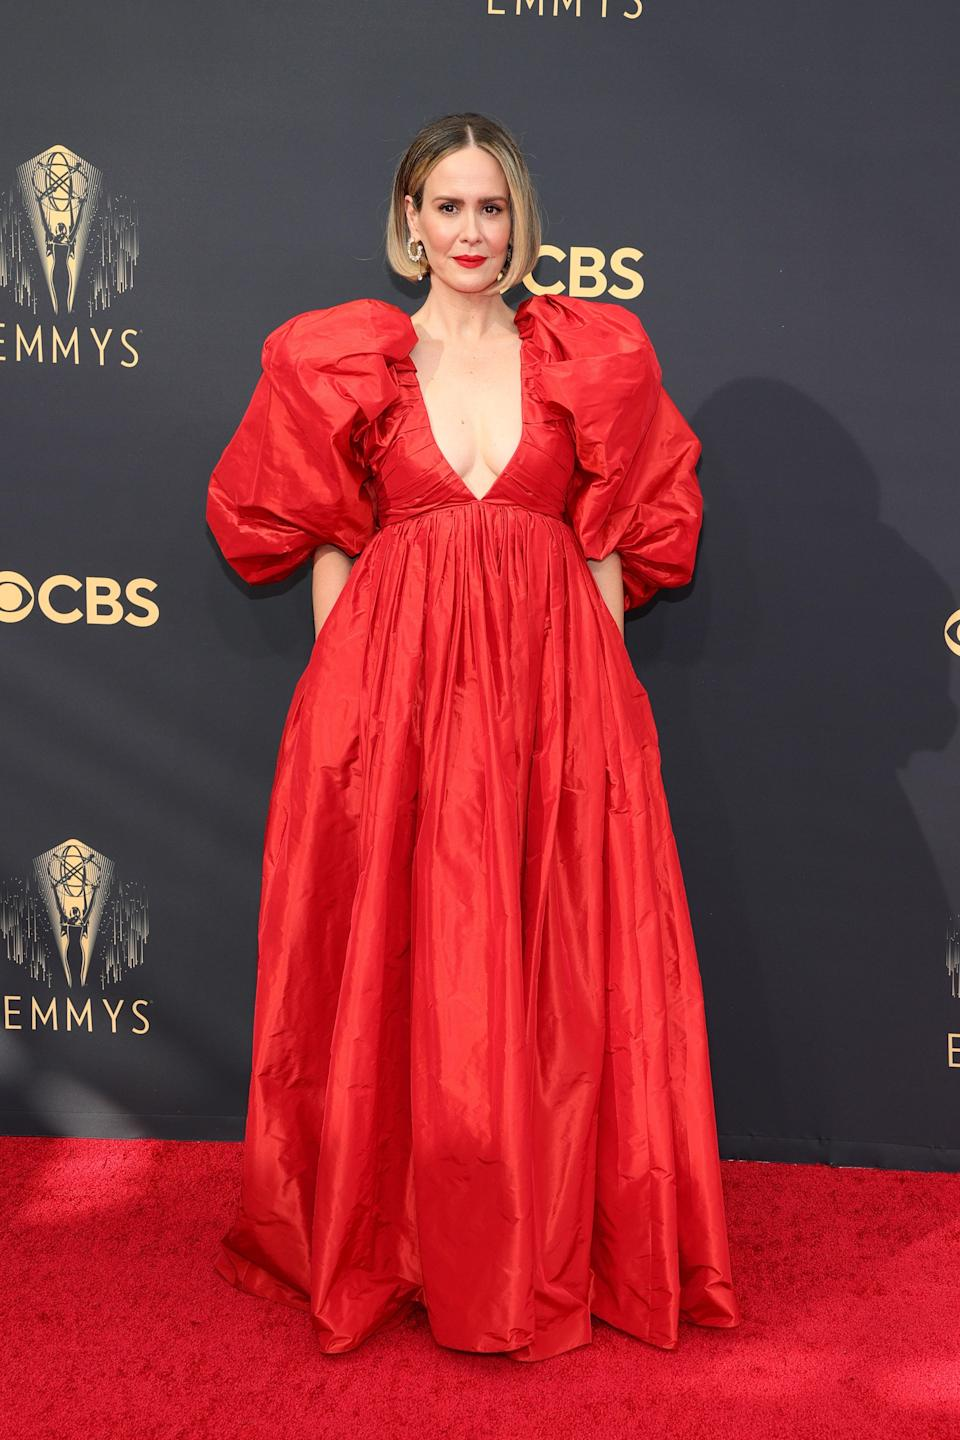 Beanie's <em>American Crime Story</em> costar matched the carpet in her scarlet Carolina Herrera gown with a deep V-neck, massive puffed sleeves, and a perfectly paired red lip.